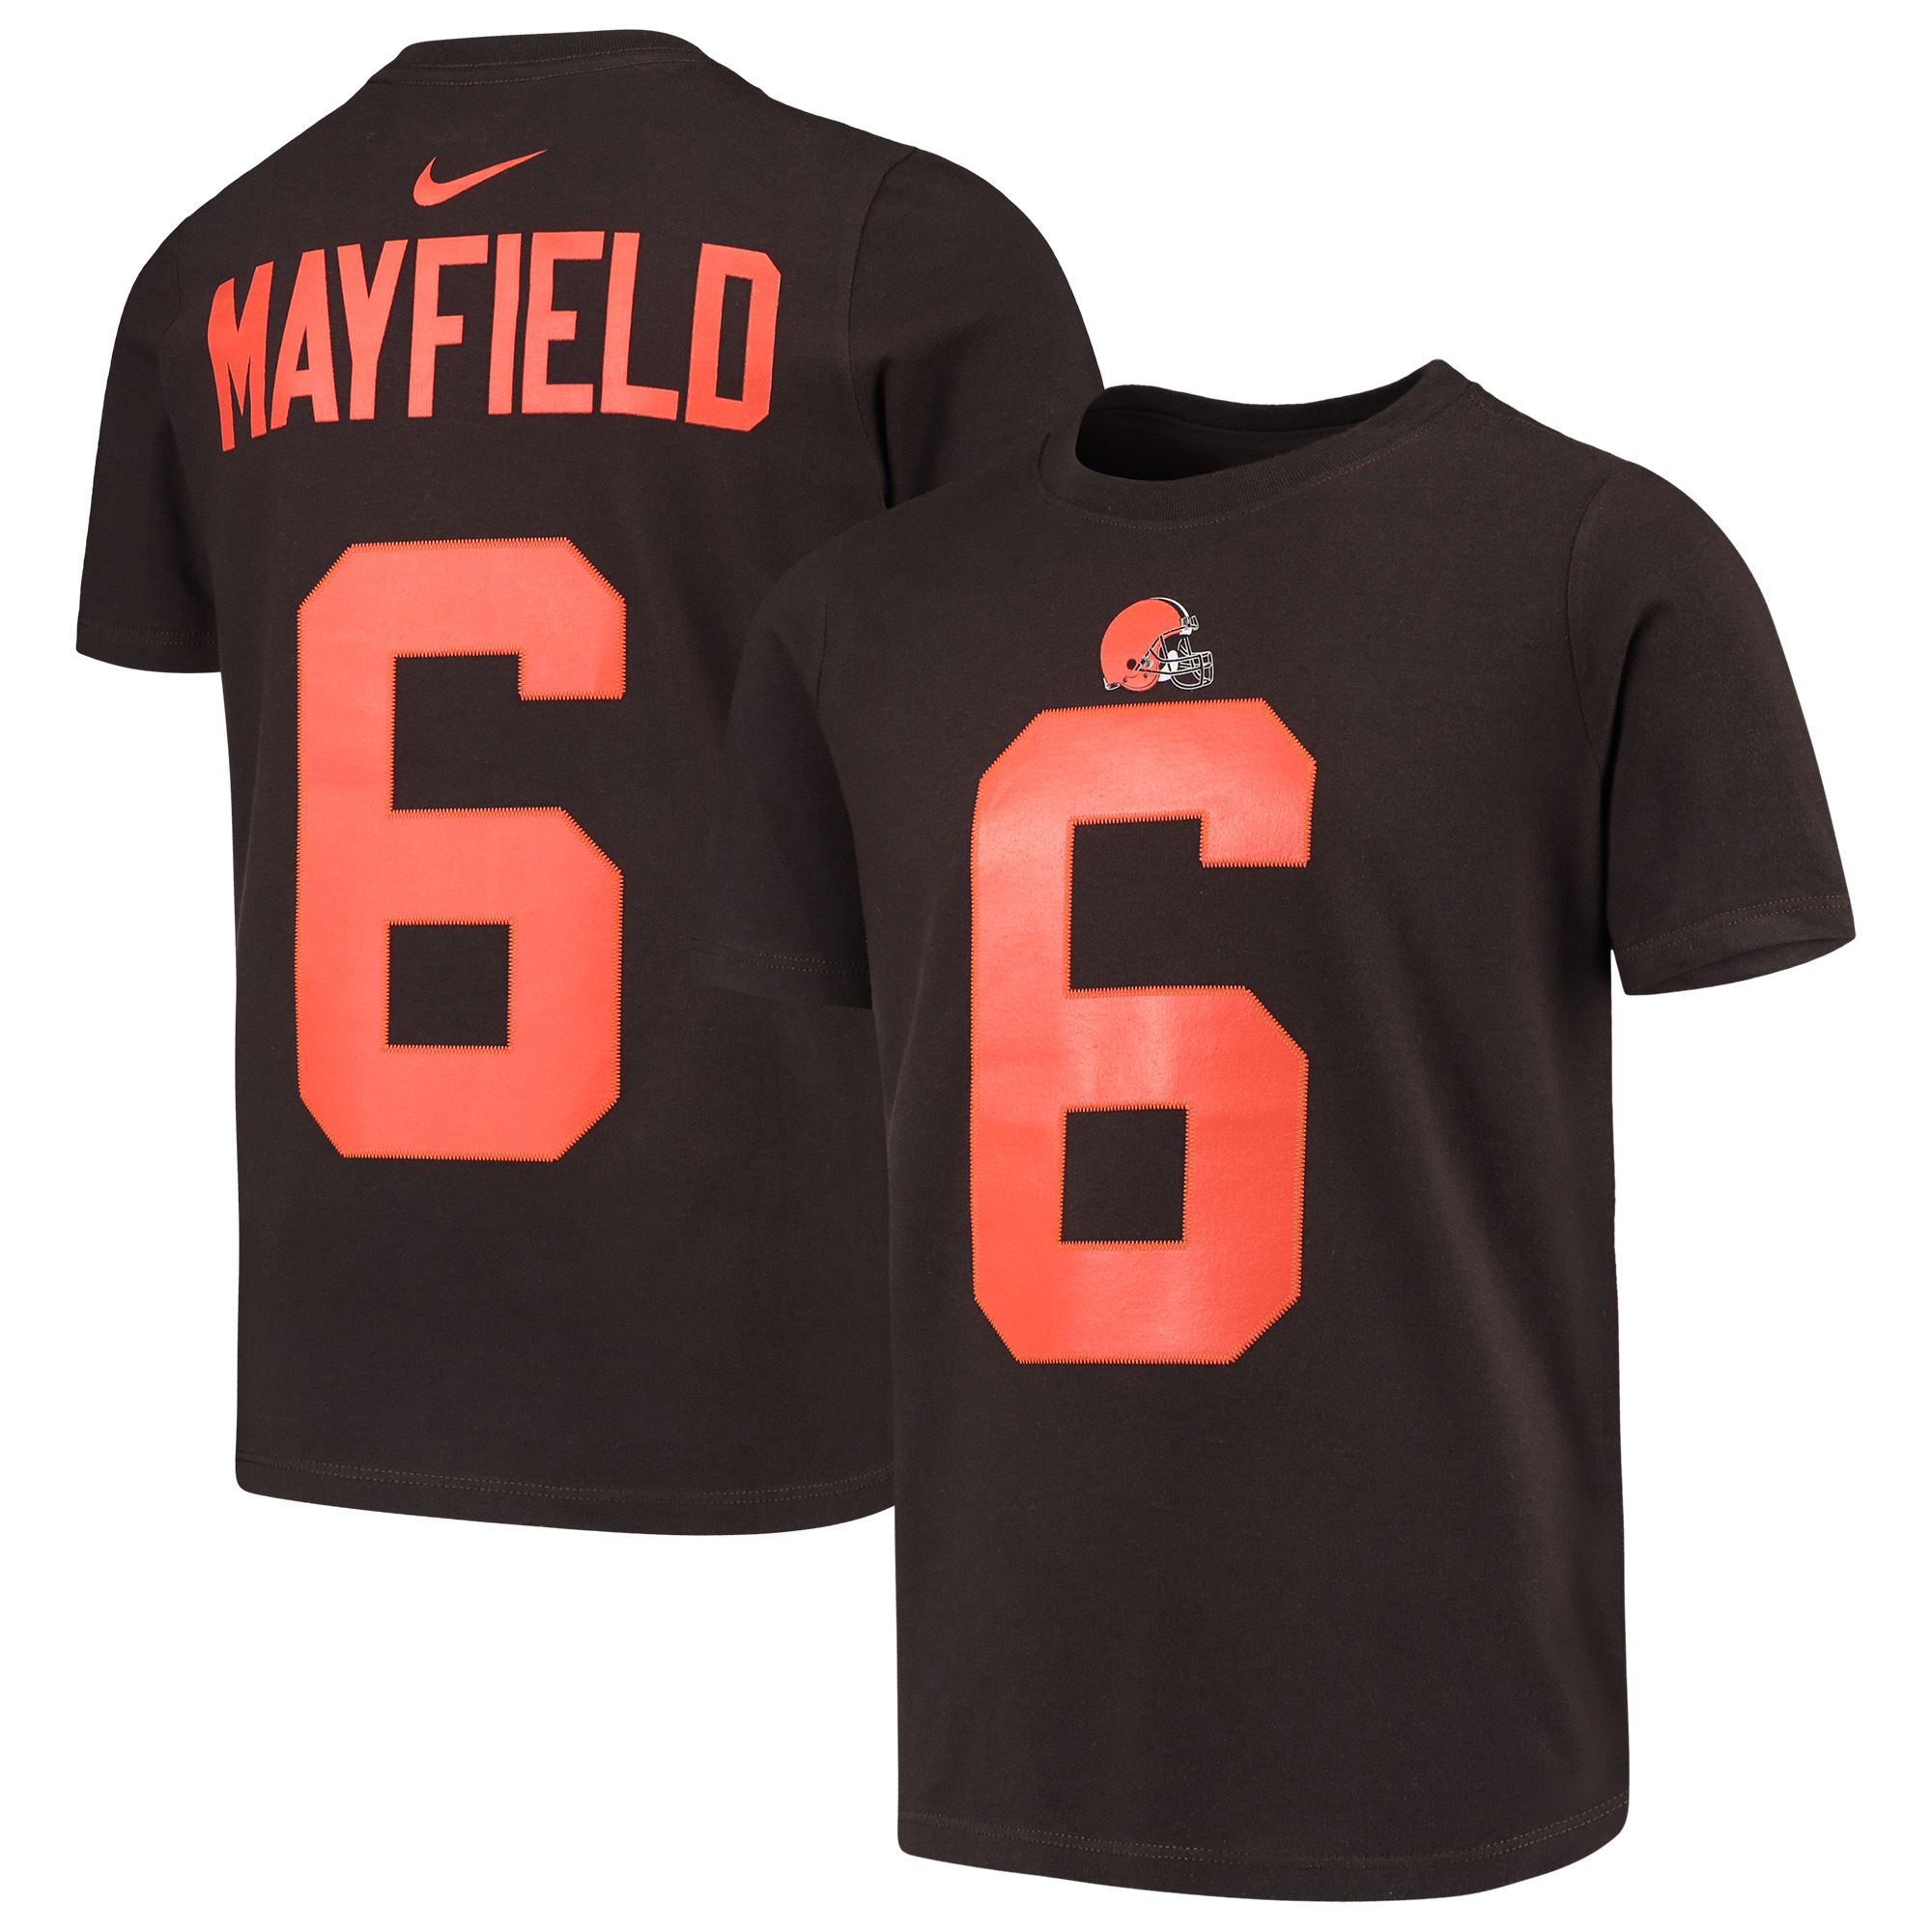 new concept ac5b0 c5fa6 Baker Mayfield Cleveland Browns Nike Youth Color Rush Player Name & Number  Performance T-Shirt - Brown